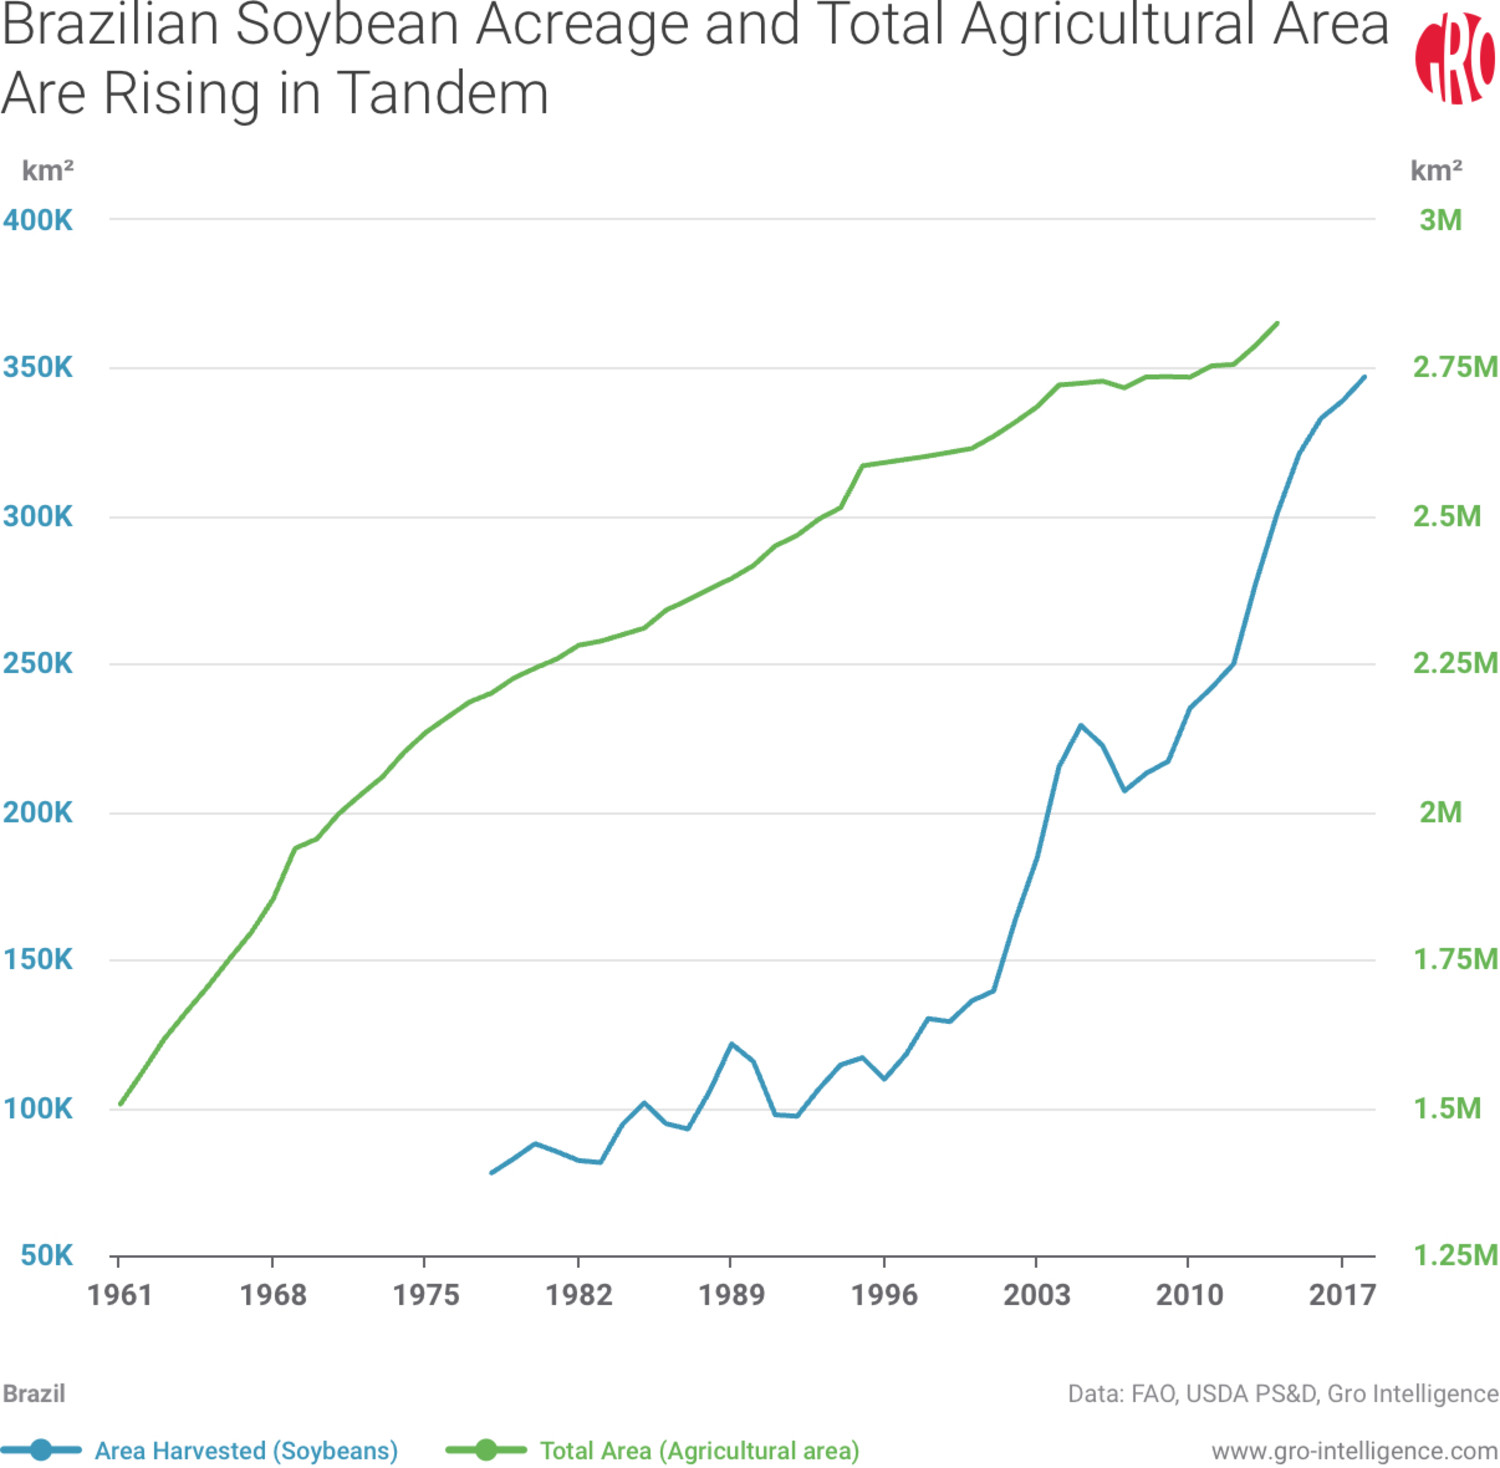 Brazilian Soybean Acreage and Total Agricultural Area Are Rising in Tandem